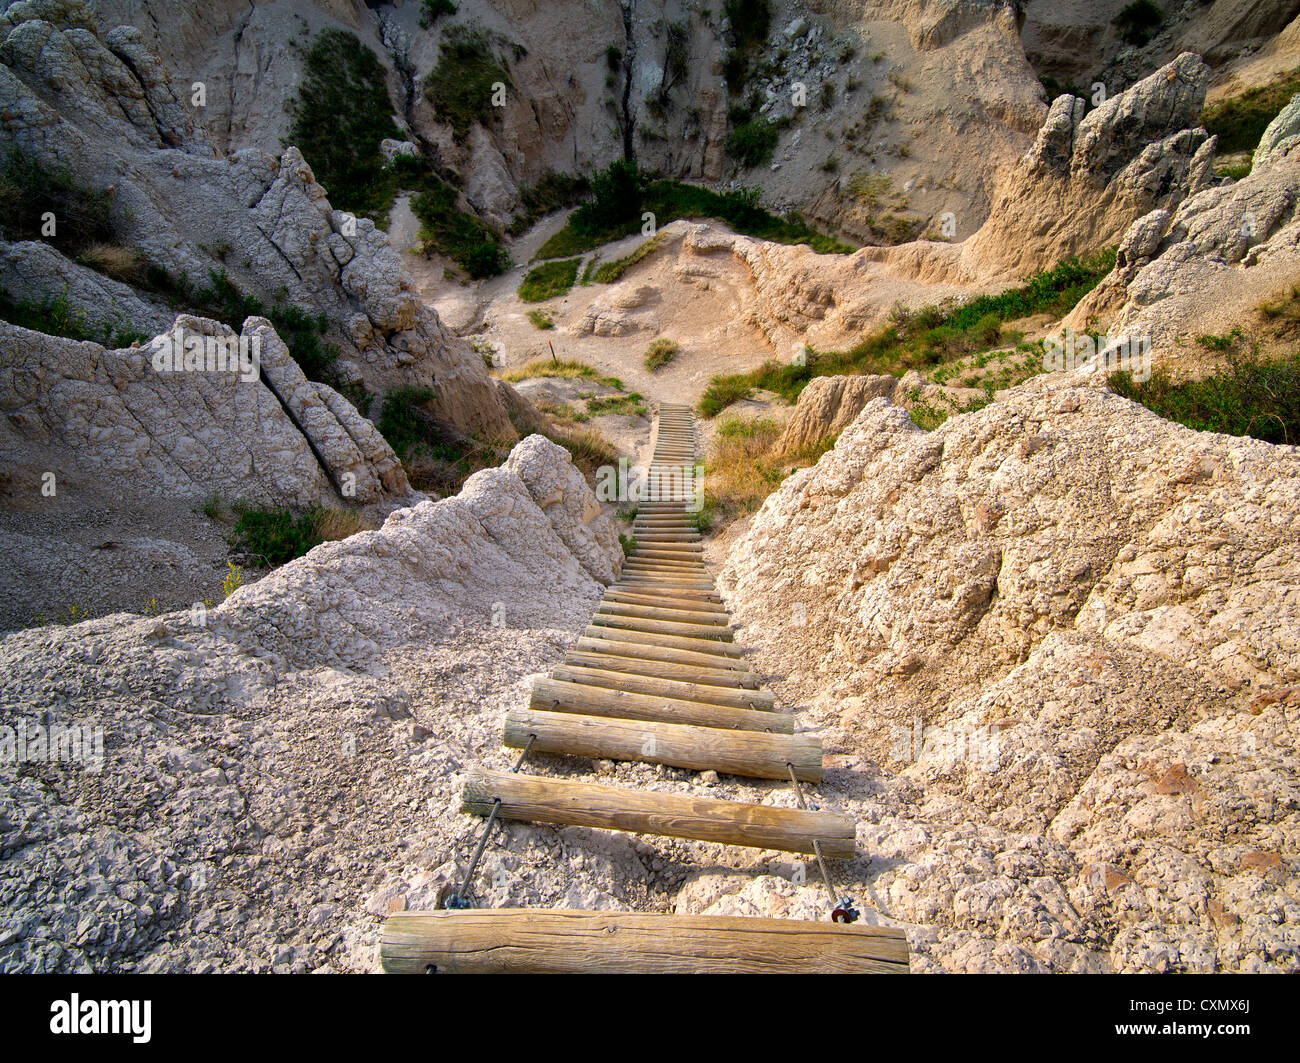 Ladder on Notch Trail. Badlands National Park, South Dakota. - Stock Image